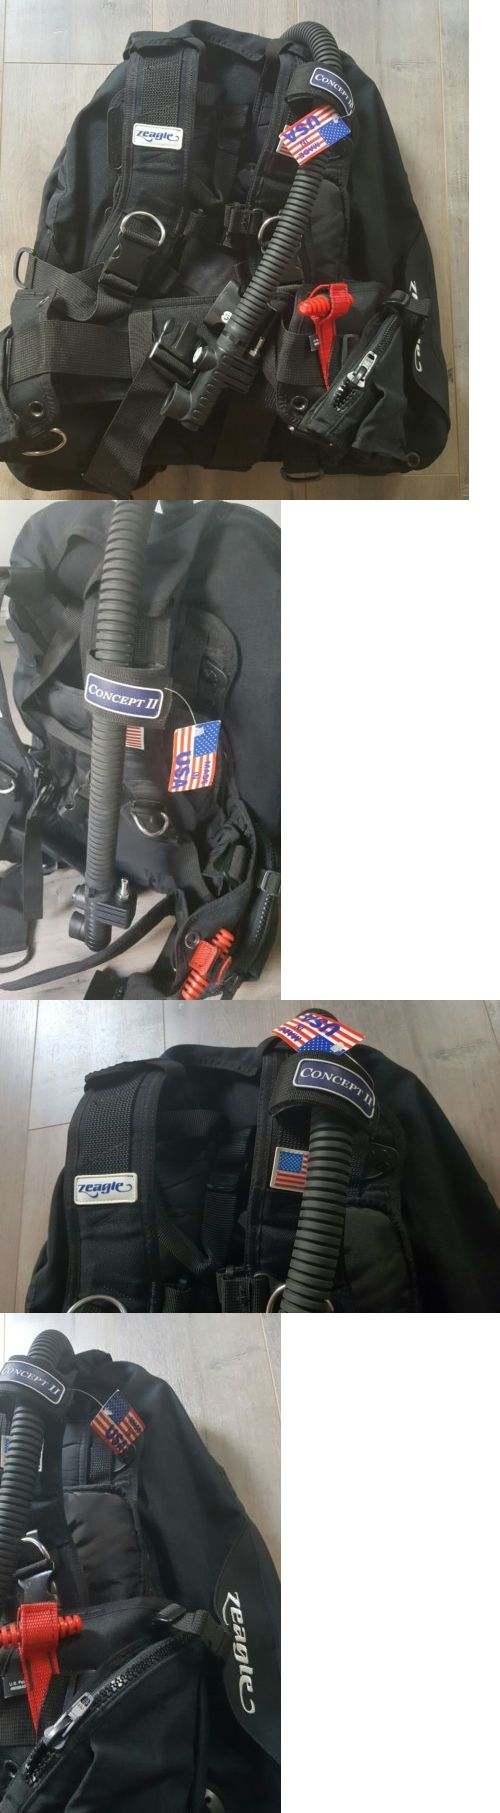 Buoyancy Compensators 16053: Zeagle Ripcord Concept Ii Scuba Bcd Size S/M Nwt! Retail $500 BUY IT NOW ONLY: $245.0